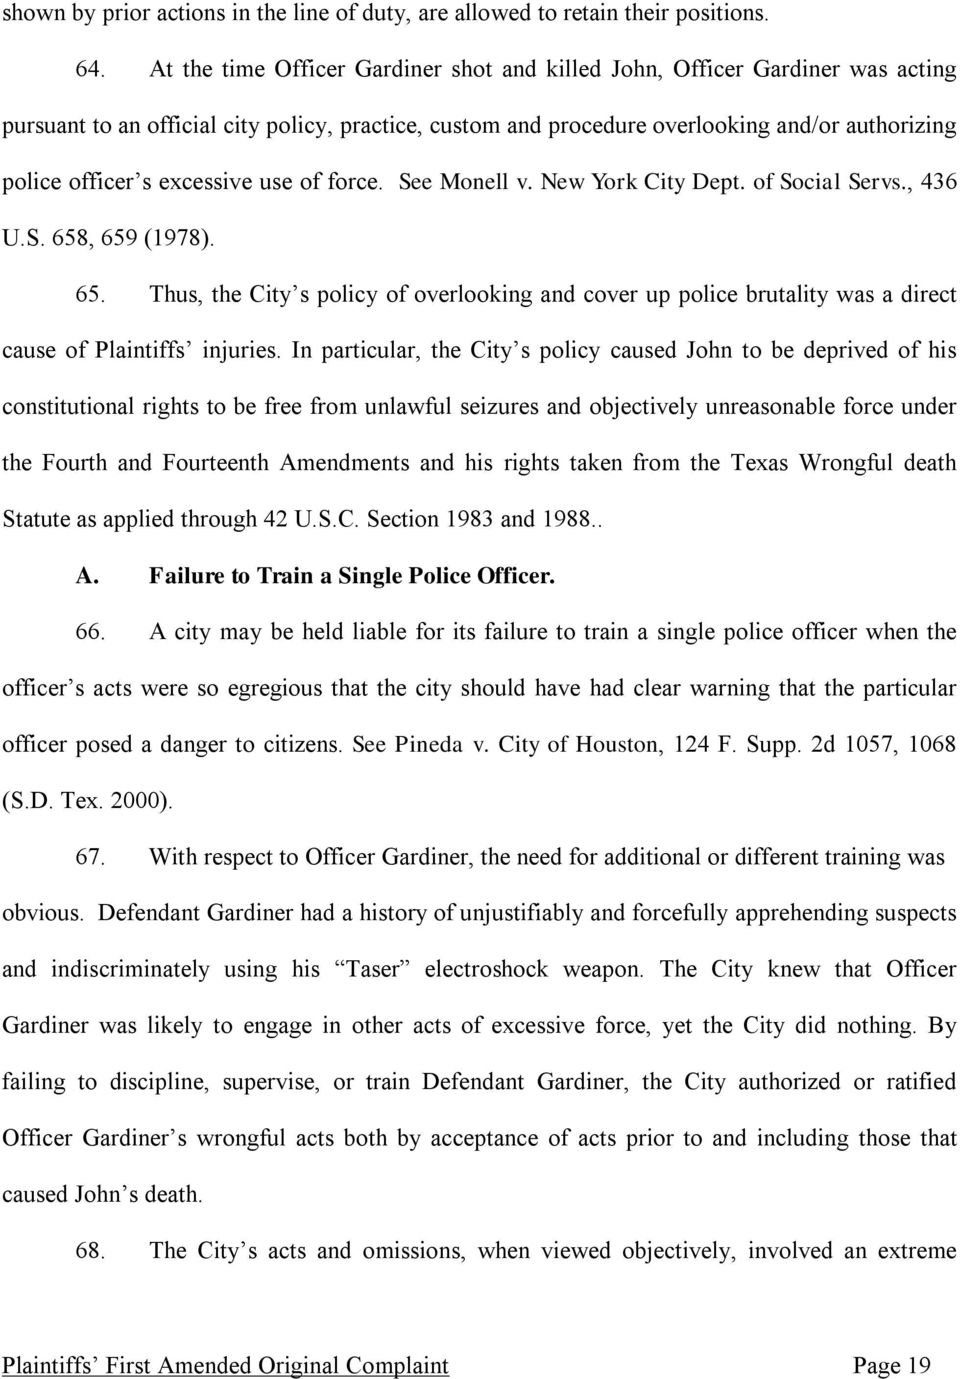 excessive use of force. See Monell v. New York City Dept. of Social Servs., 436 U.S. 658, 659 (1978). 65. Thus, the City s policy of overlooking and cover up police brutality was a direct cause of Plaintiffs injuries.